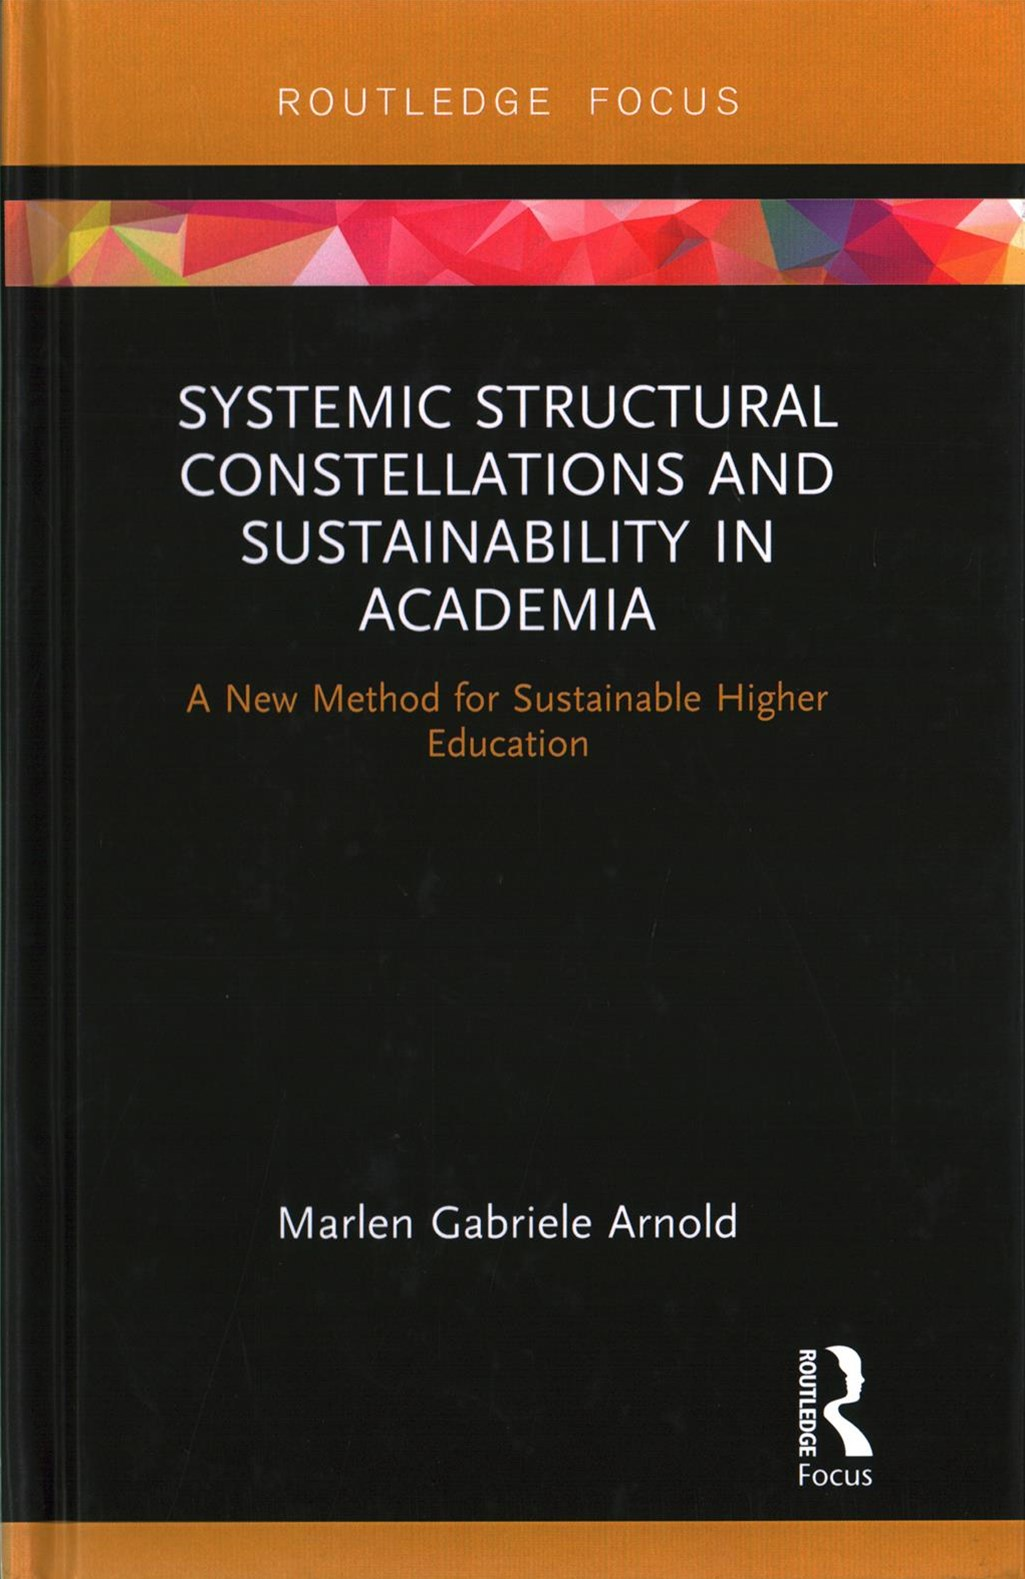 Systemic Structural Constellations and Sustainability in Academia